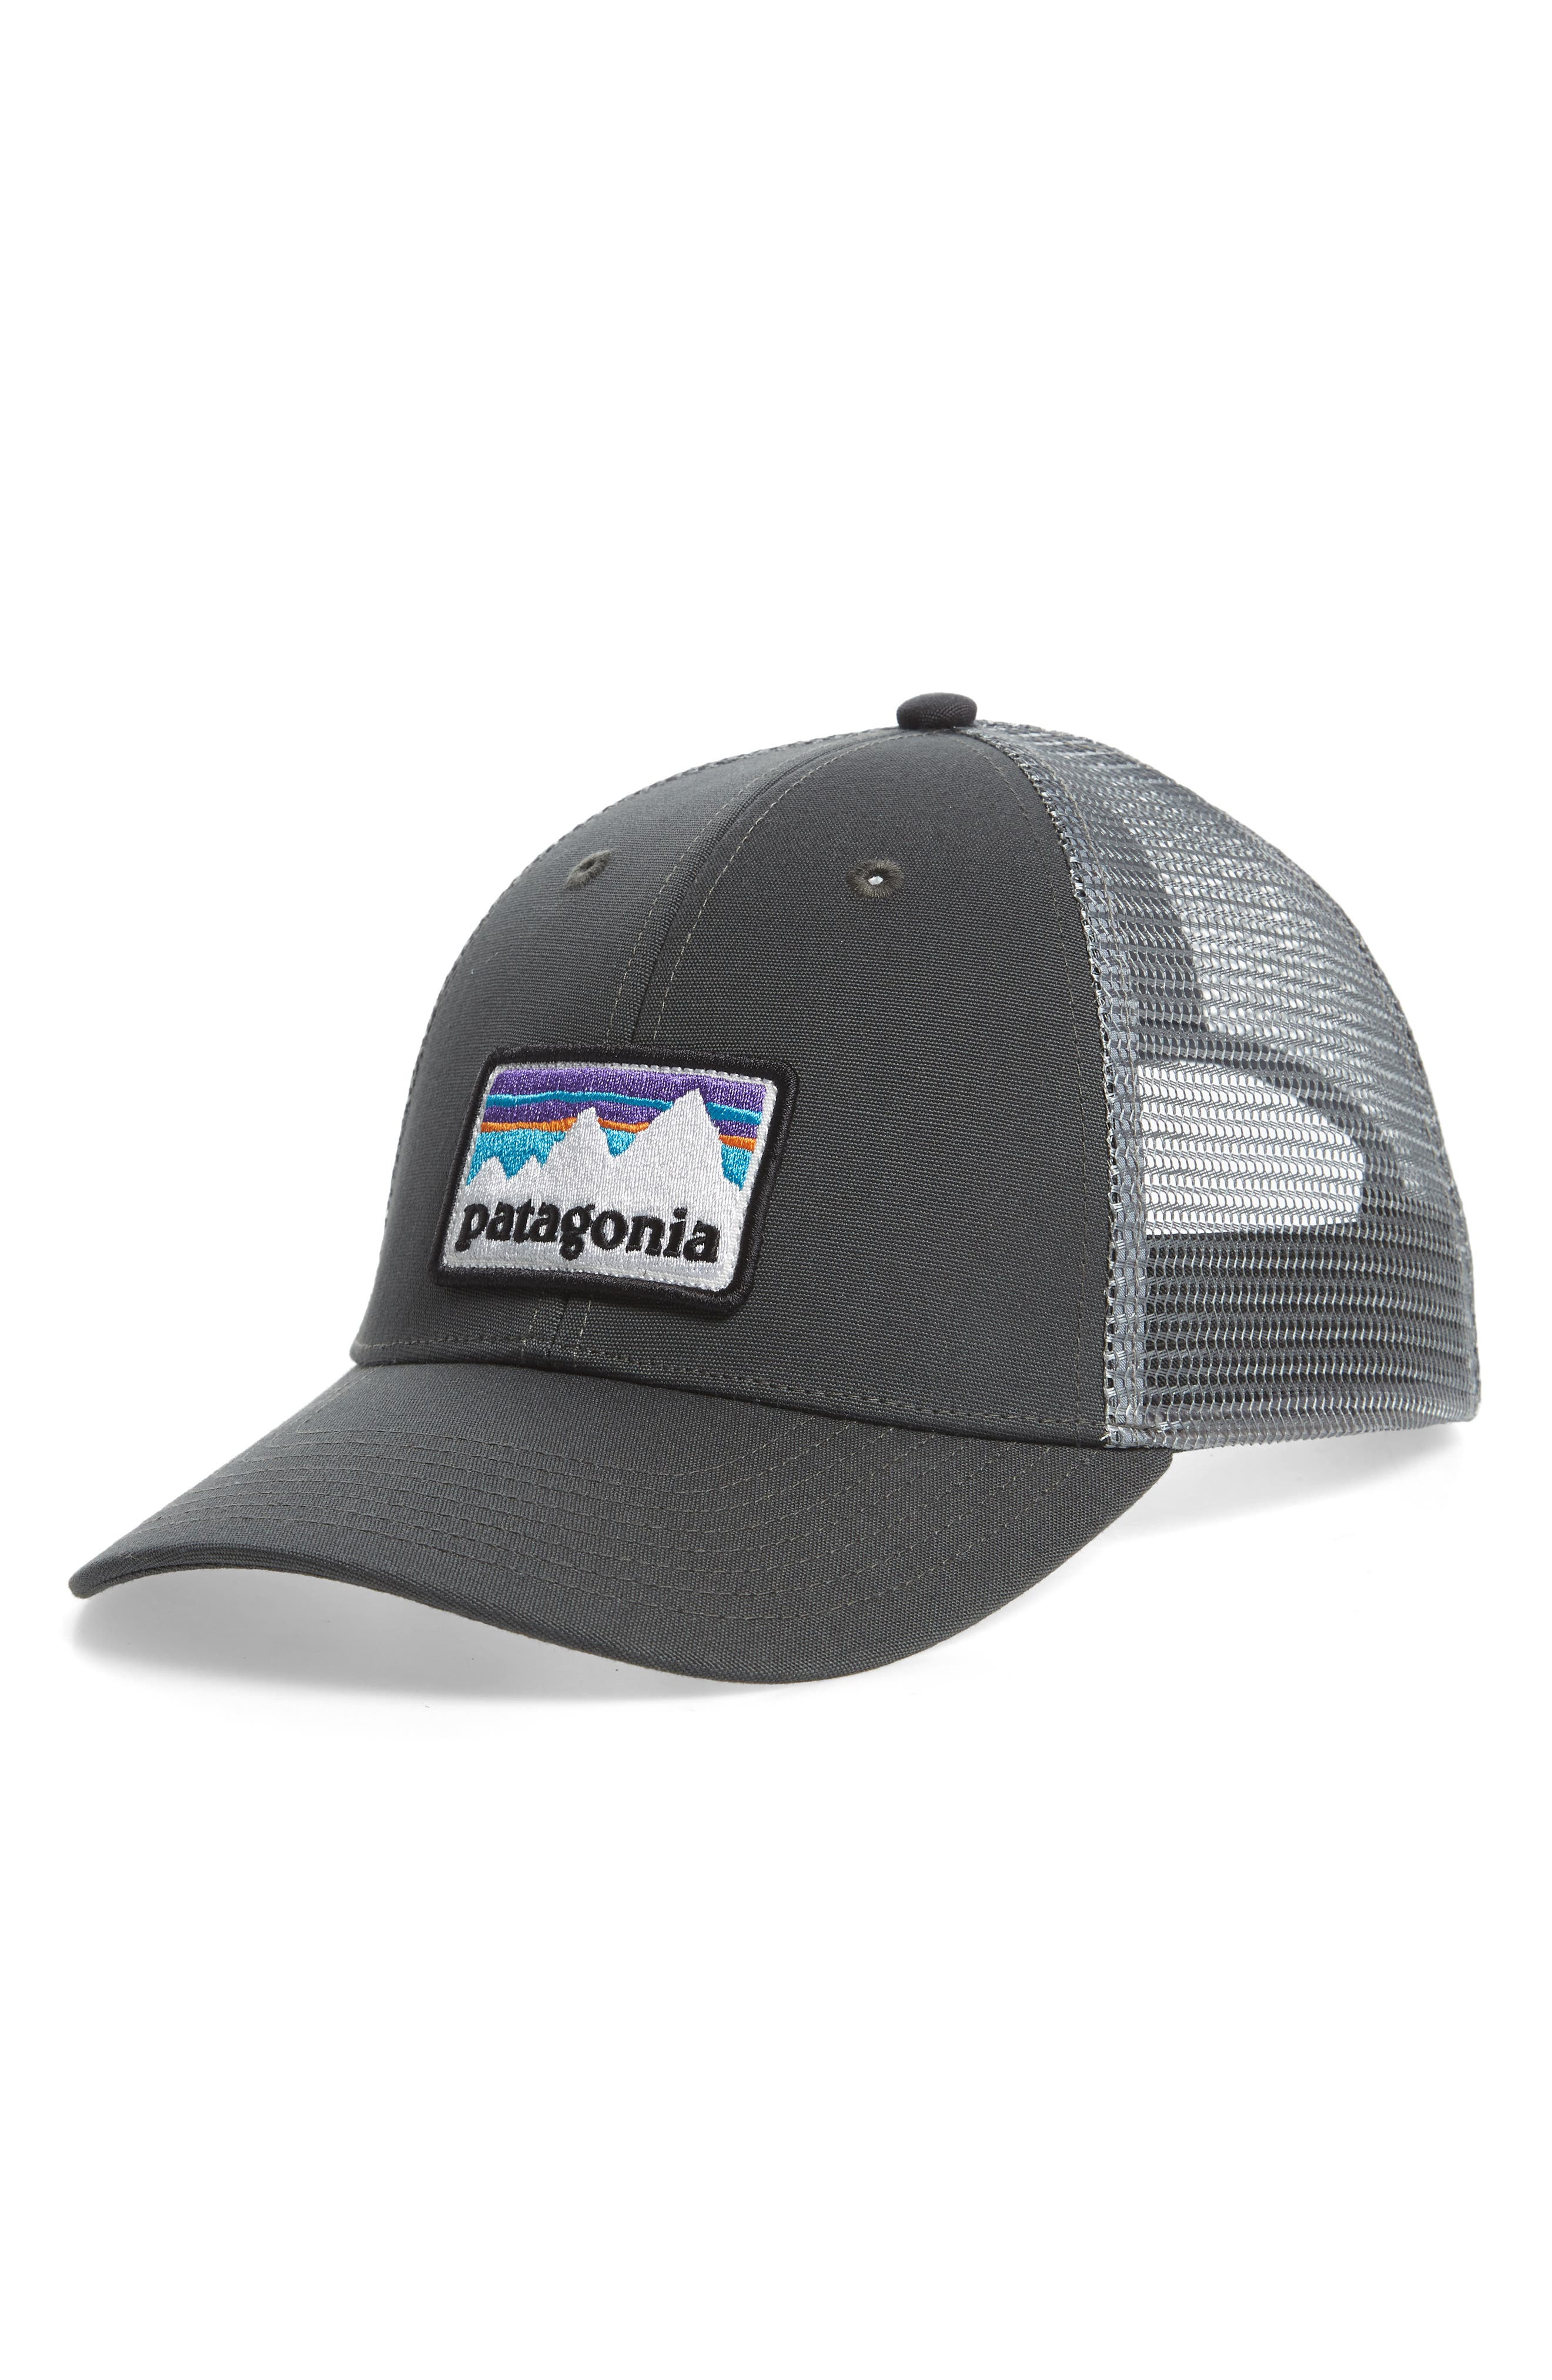 Shop Sticker Trucker Hat,                             Main thumbnail 1, color,                             FORGE GREY